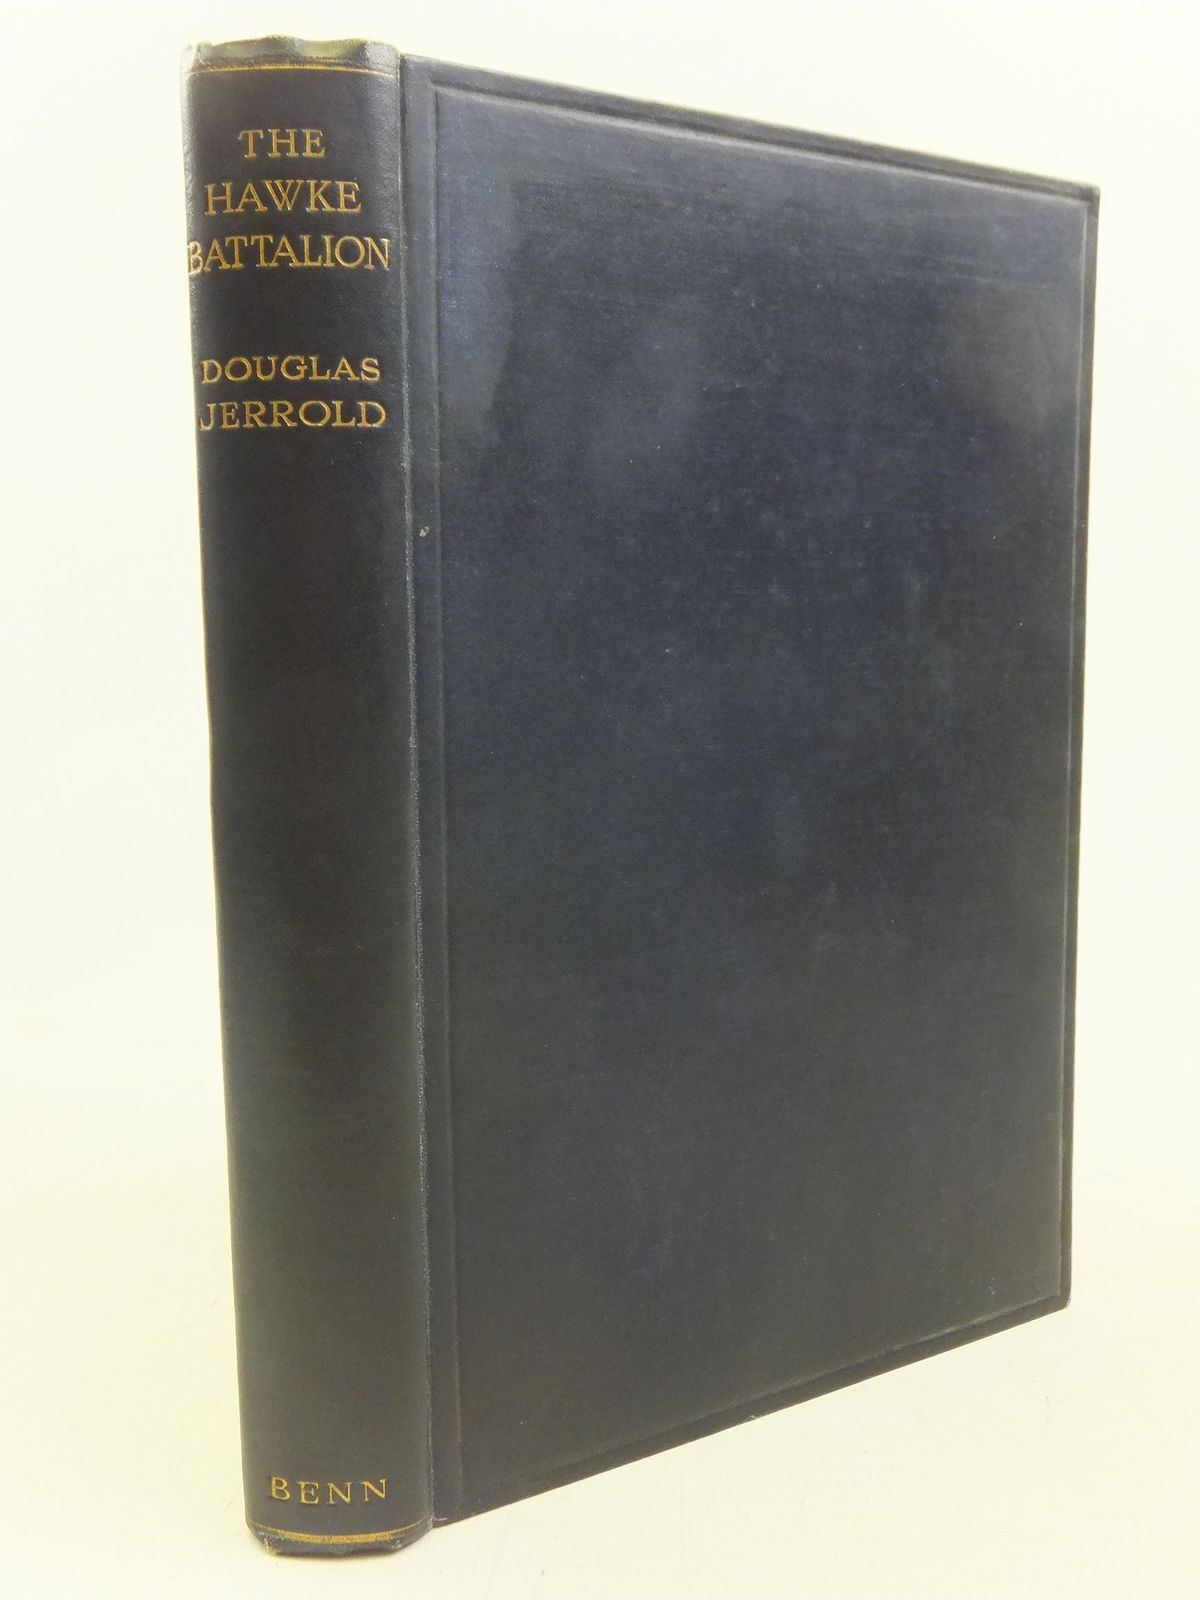 Photo of THE HAWKE BATTALION written by Jerrold, Douglas published by Ernest Benn Limited (STOCK CODE: 1712555)  for sale by Stella & Rose's Books